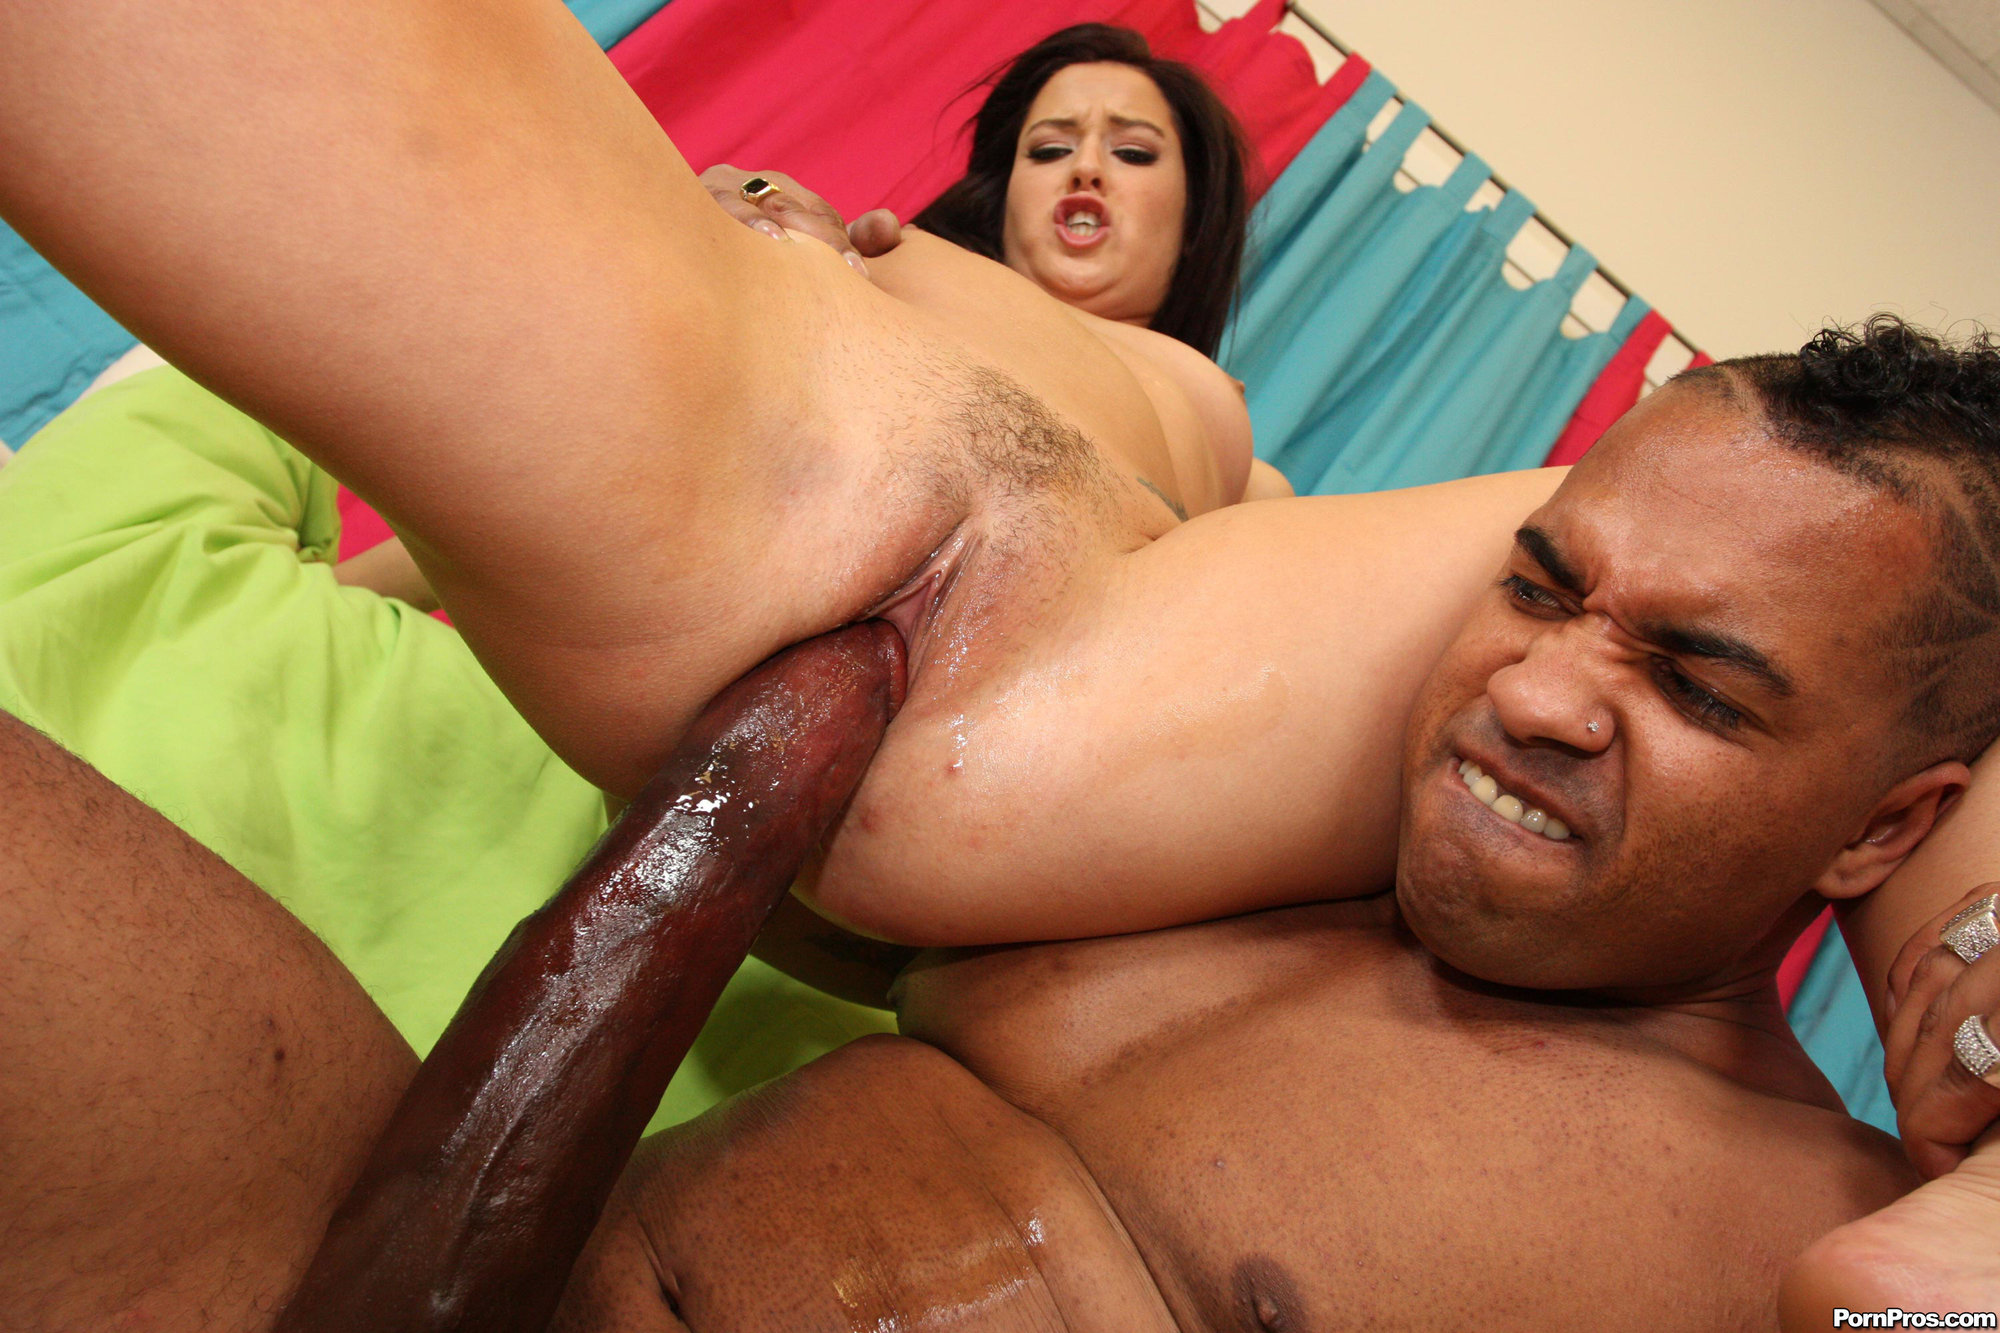 Comment monster 15 inch cock